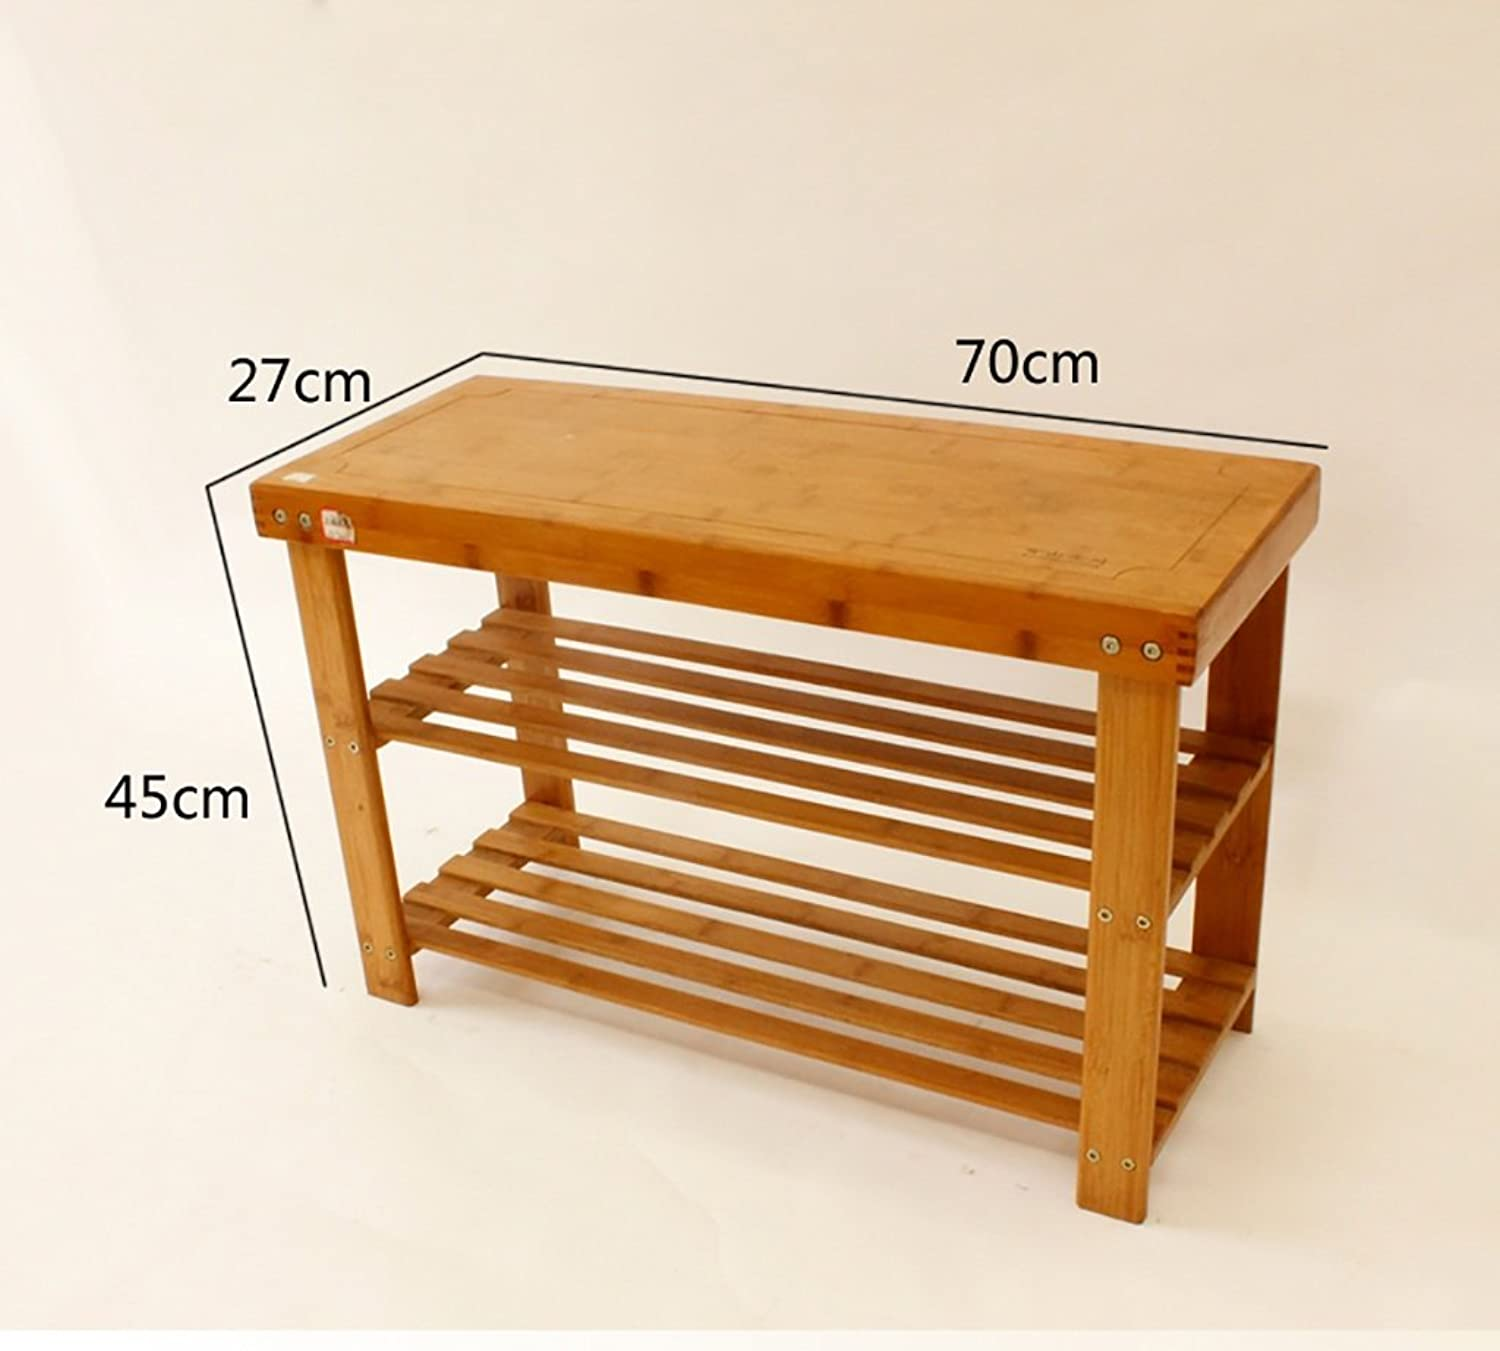 shoes Bench Organizing Rack shoes Rack, Bedroom Simple Solid Wood Flat Stool Set shoes Rack, Multi-Function for The shoes Stool (Size   70cm)